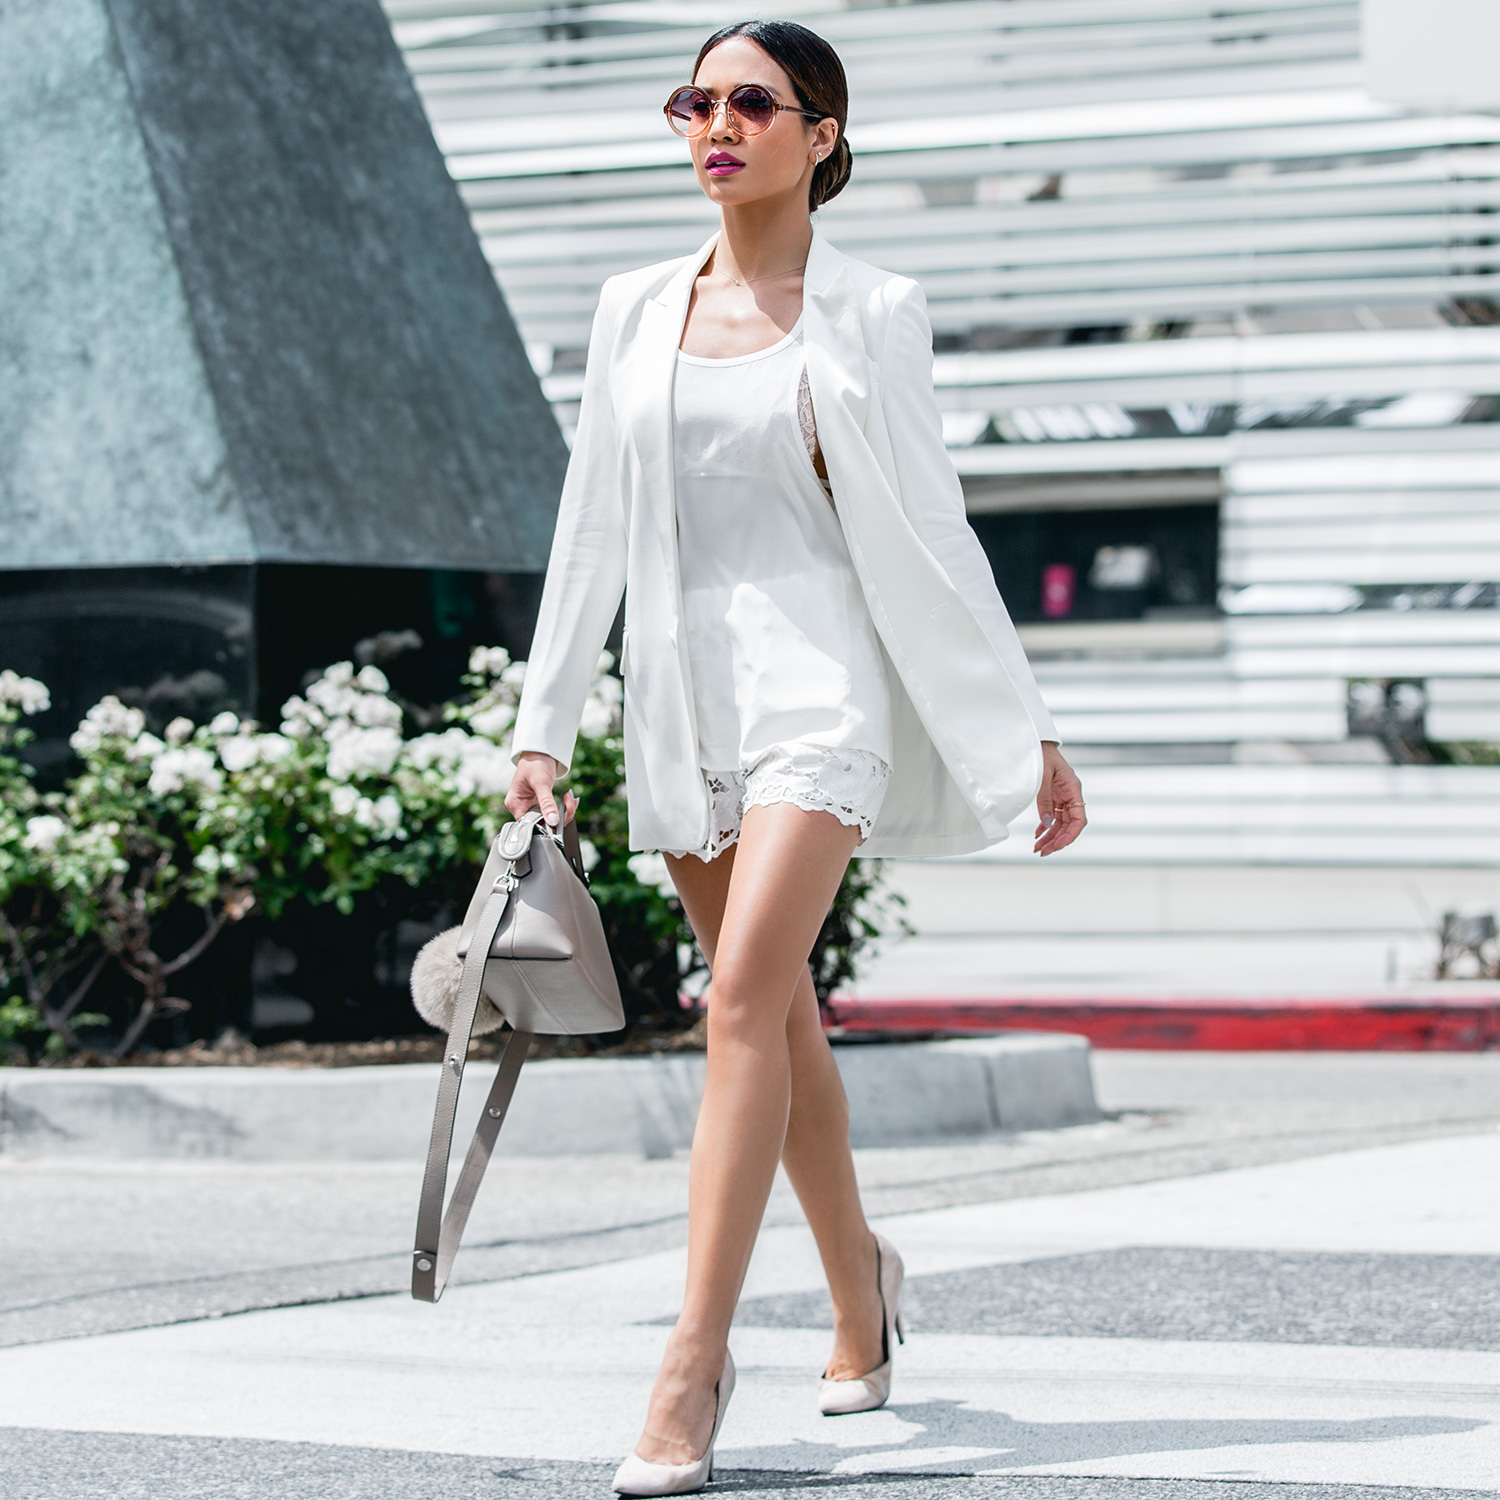 Jessi Malay wearing Express Edition Collection White Blazer_MG_0676